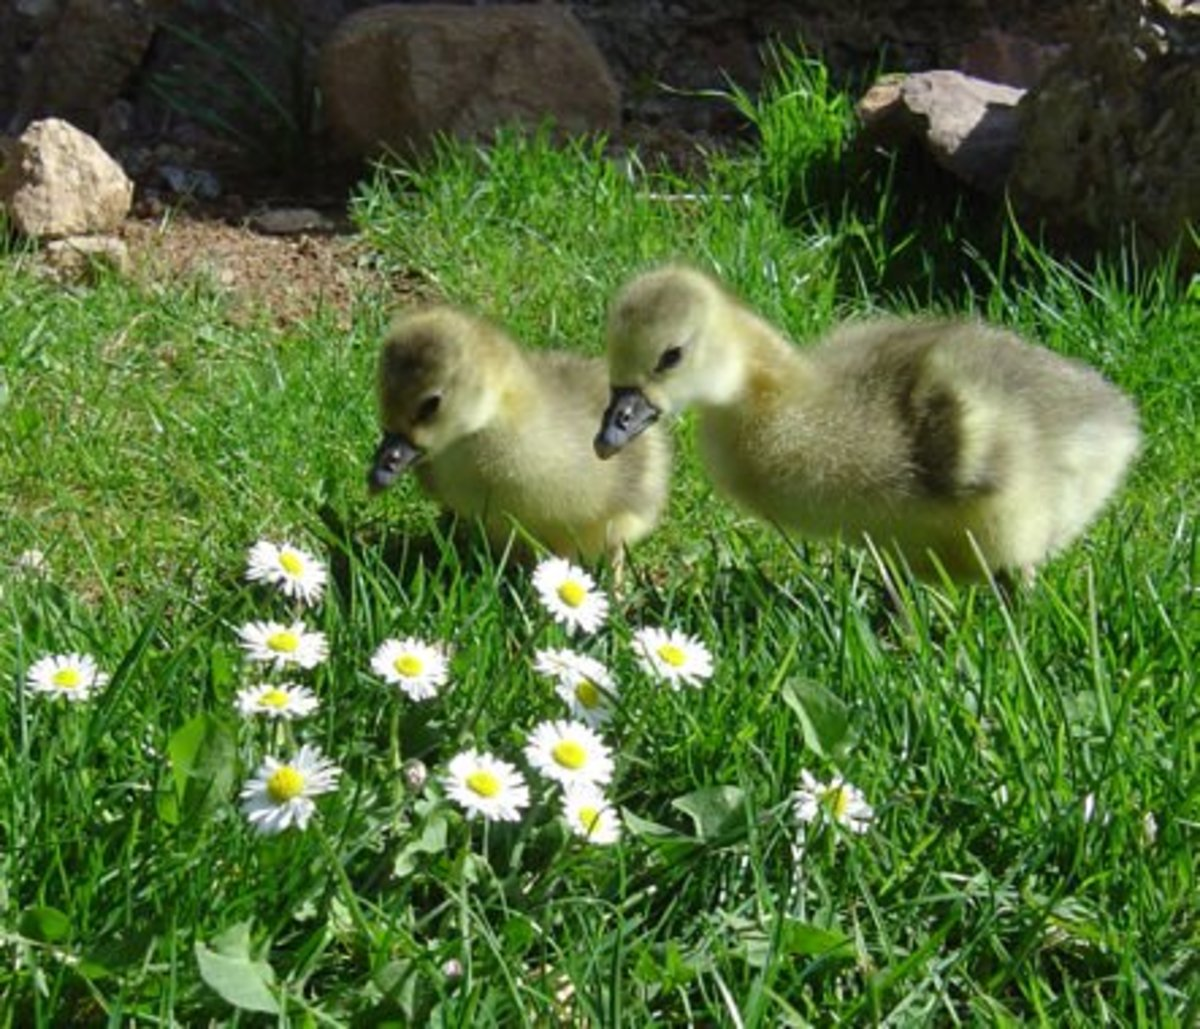 Goslings are so cute - so do learn how to care for geese and goslings properly